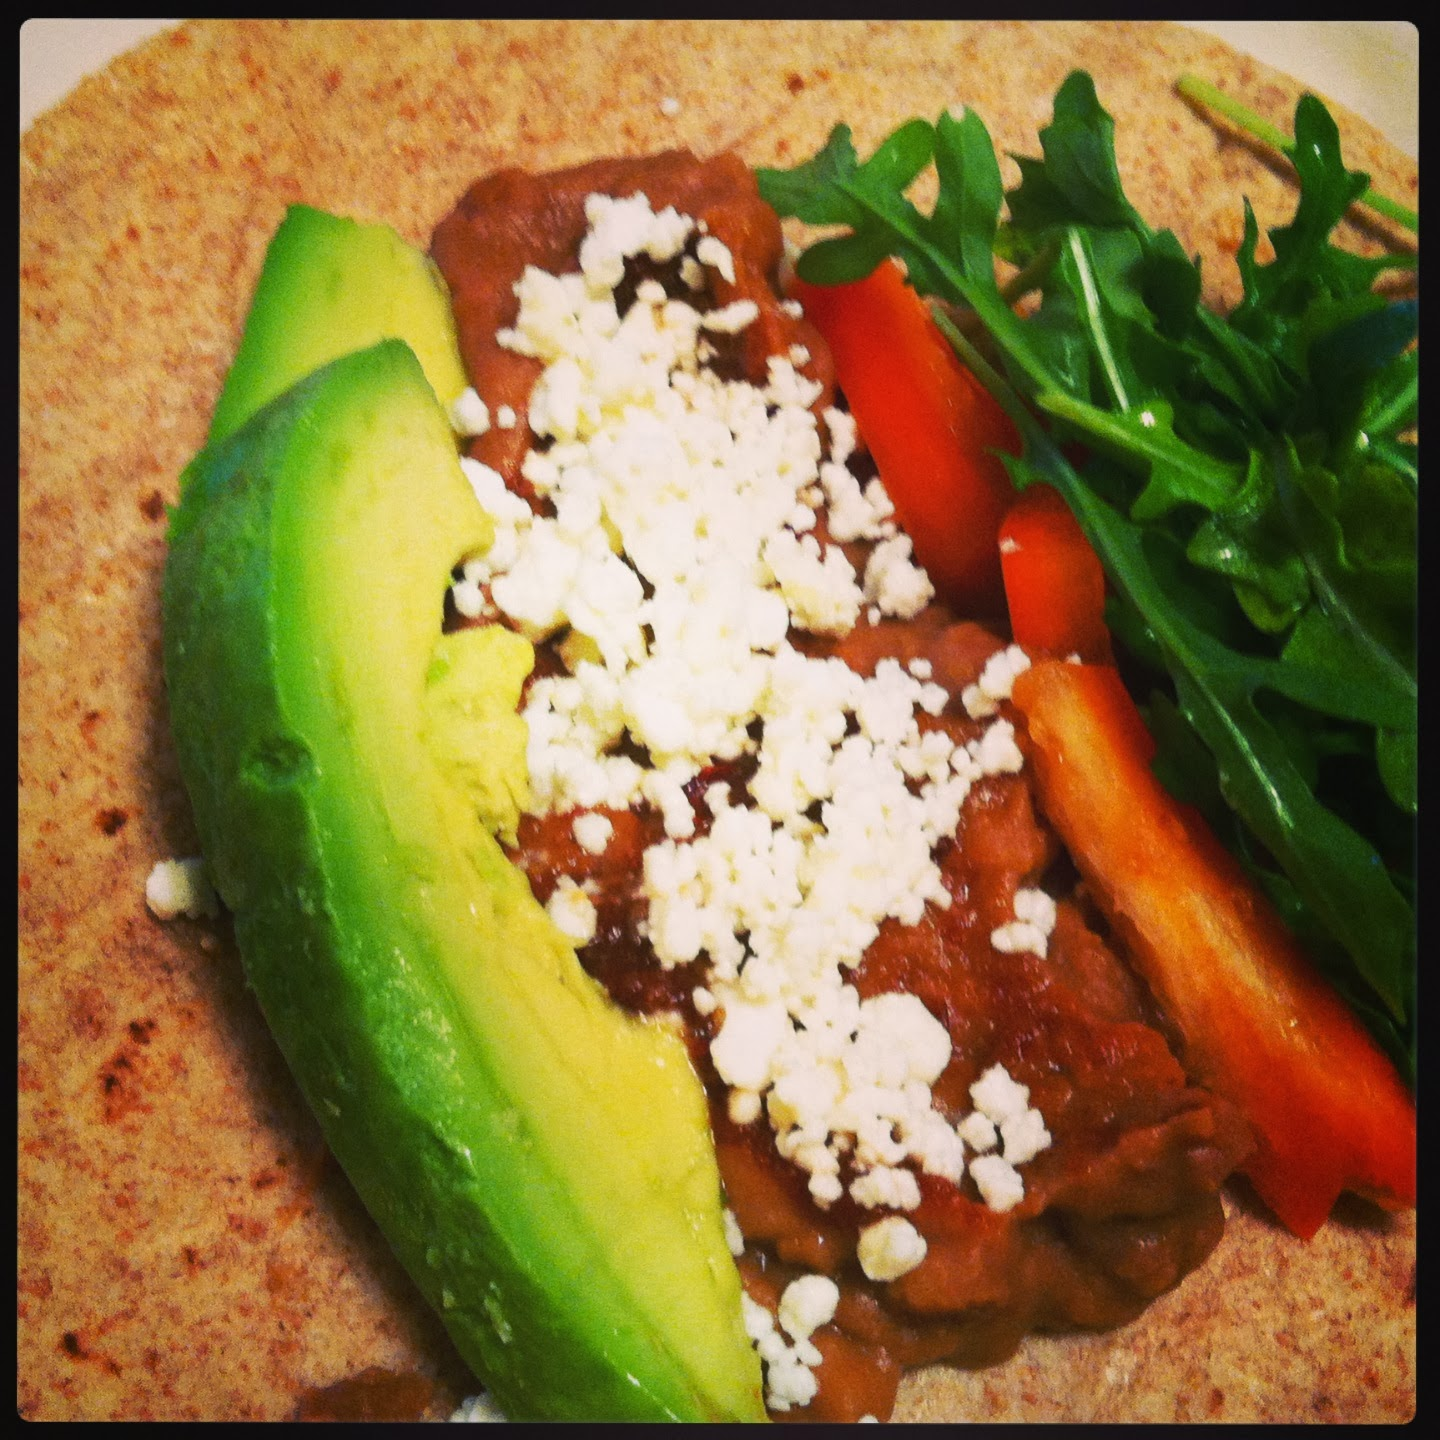 soft tacos with refried beans, avocado and other vegetables